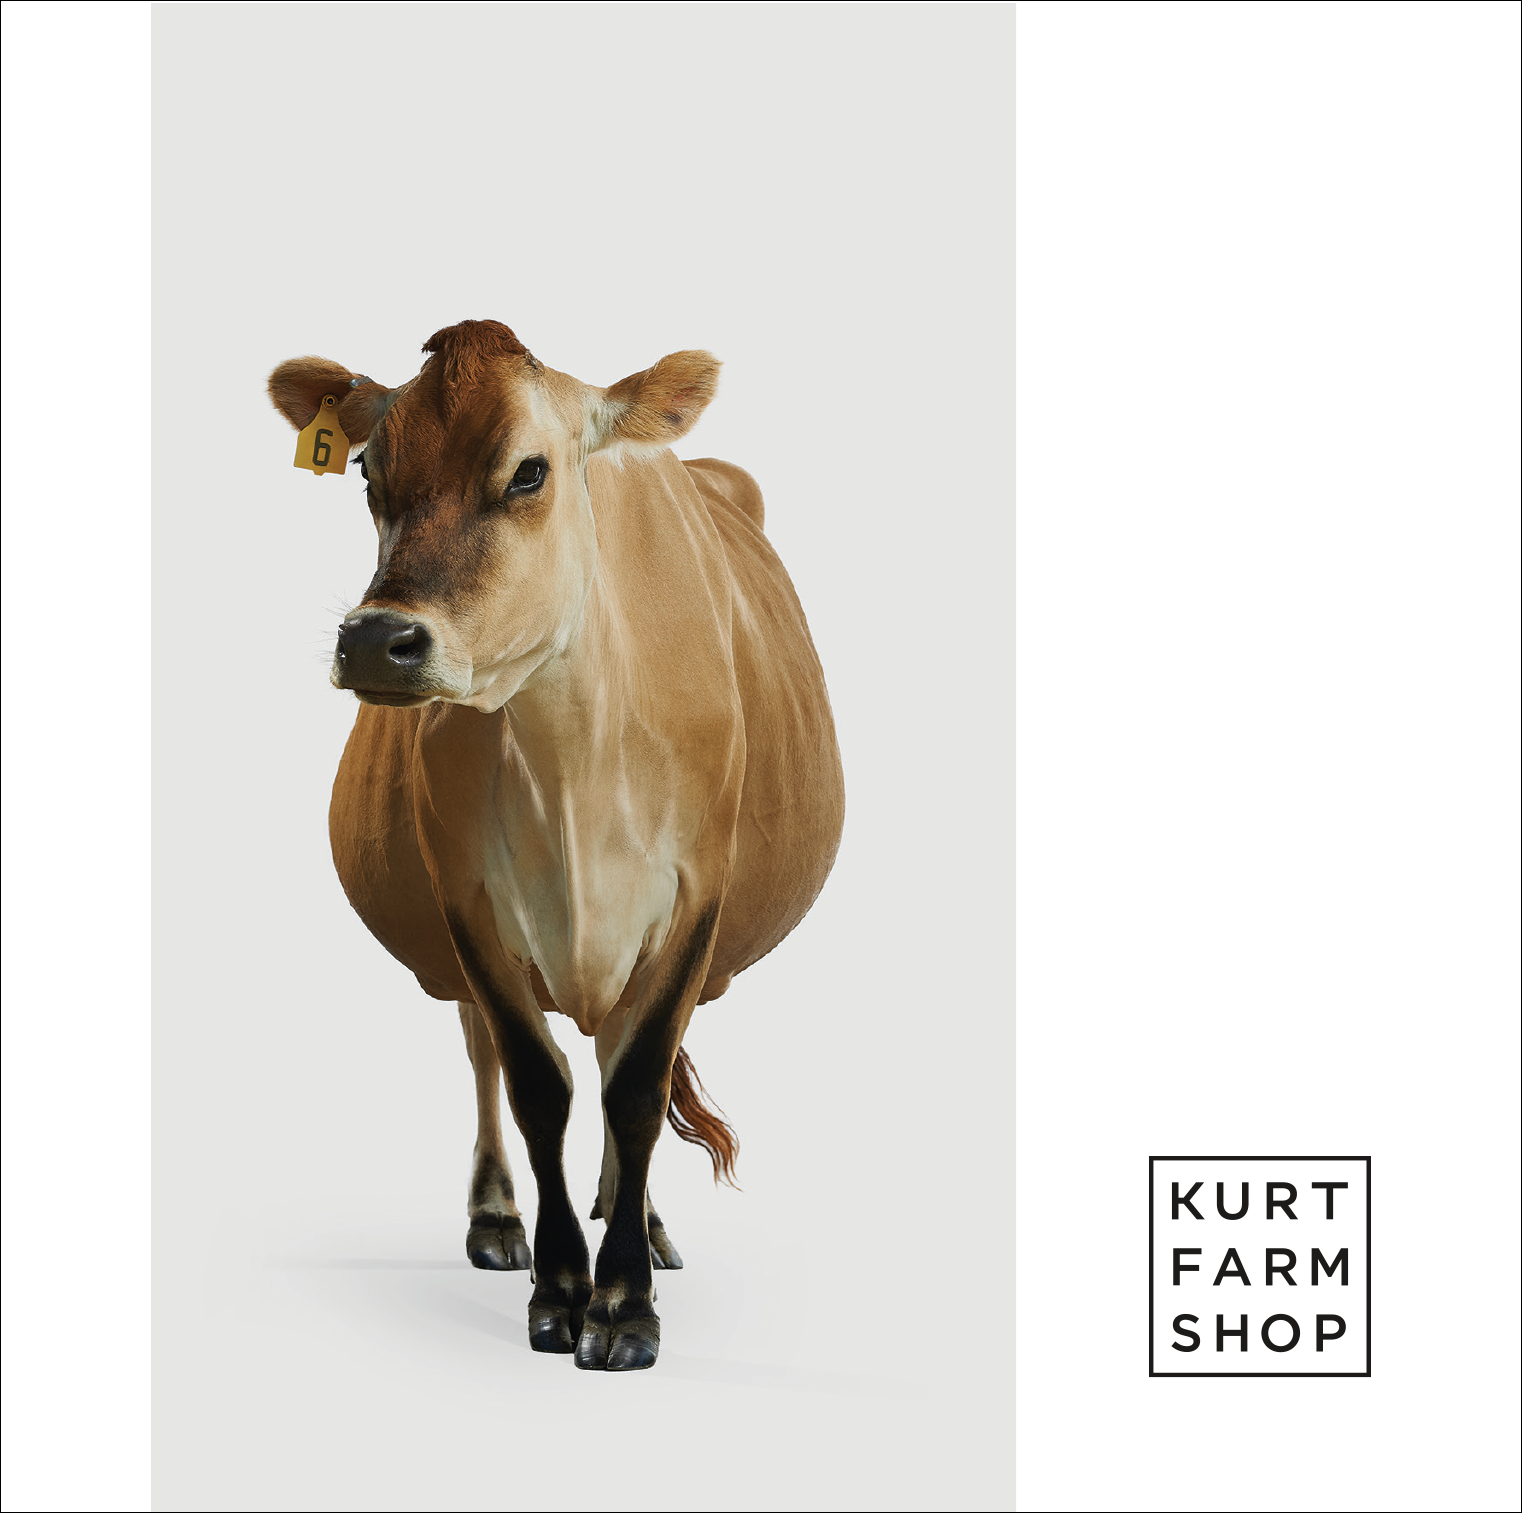 Kurt Farm Shop | Postcard